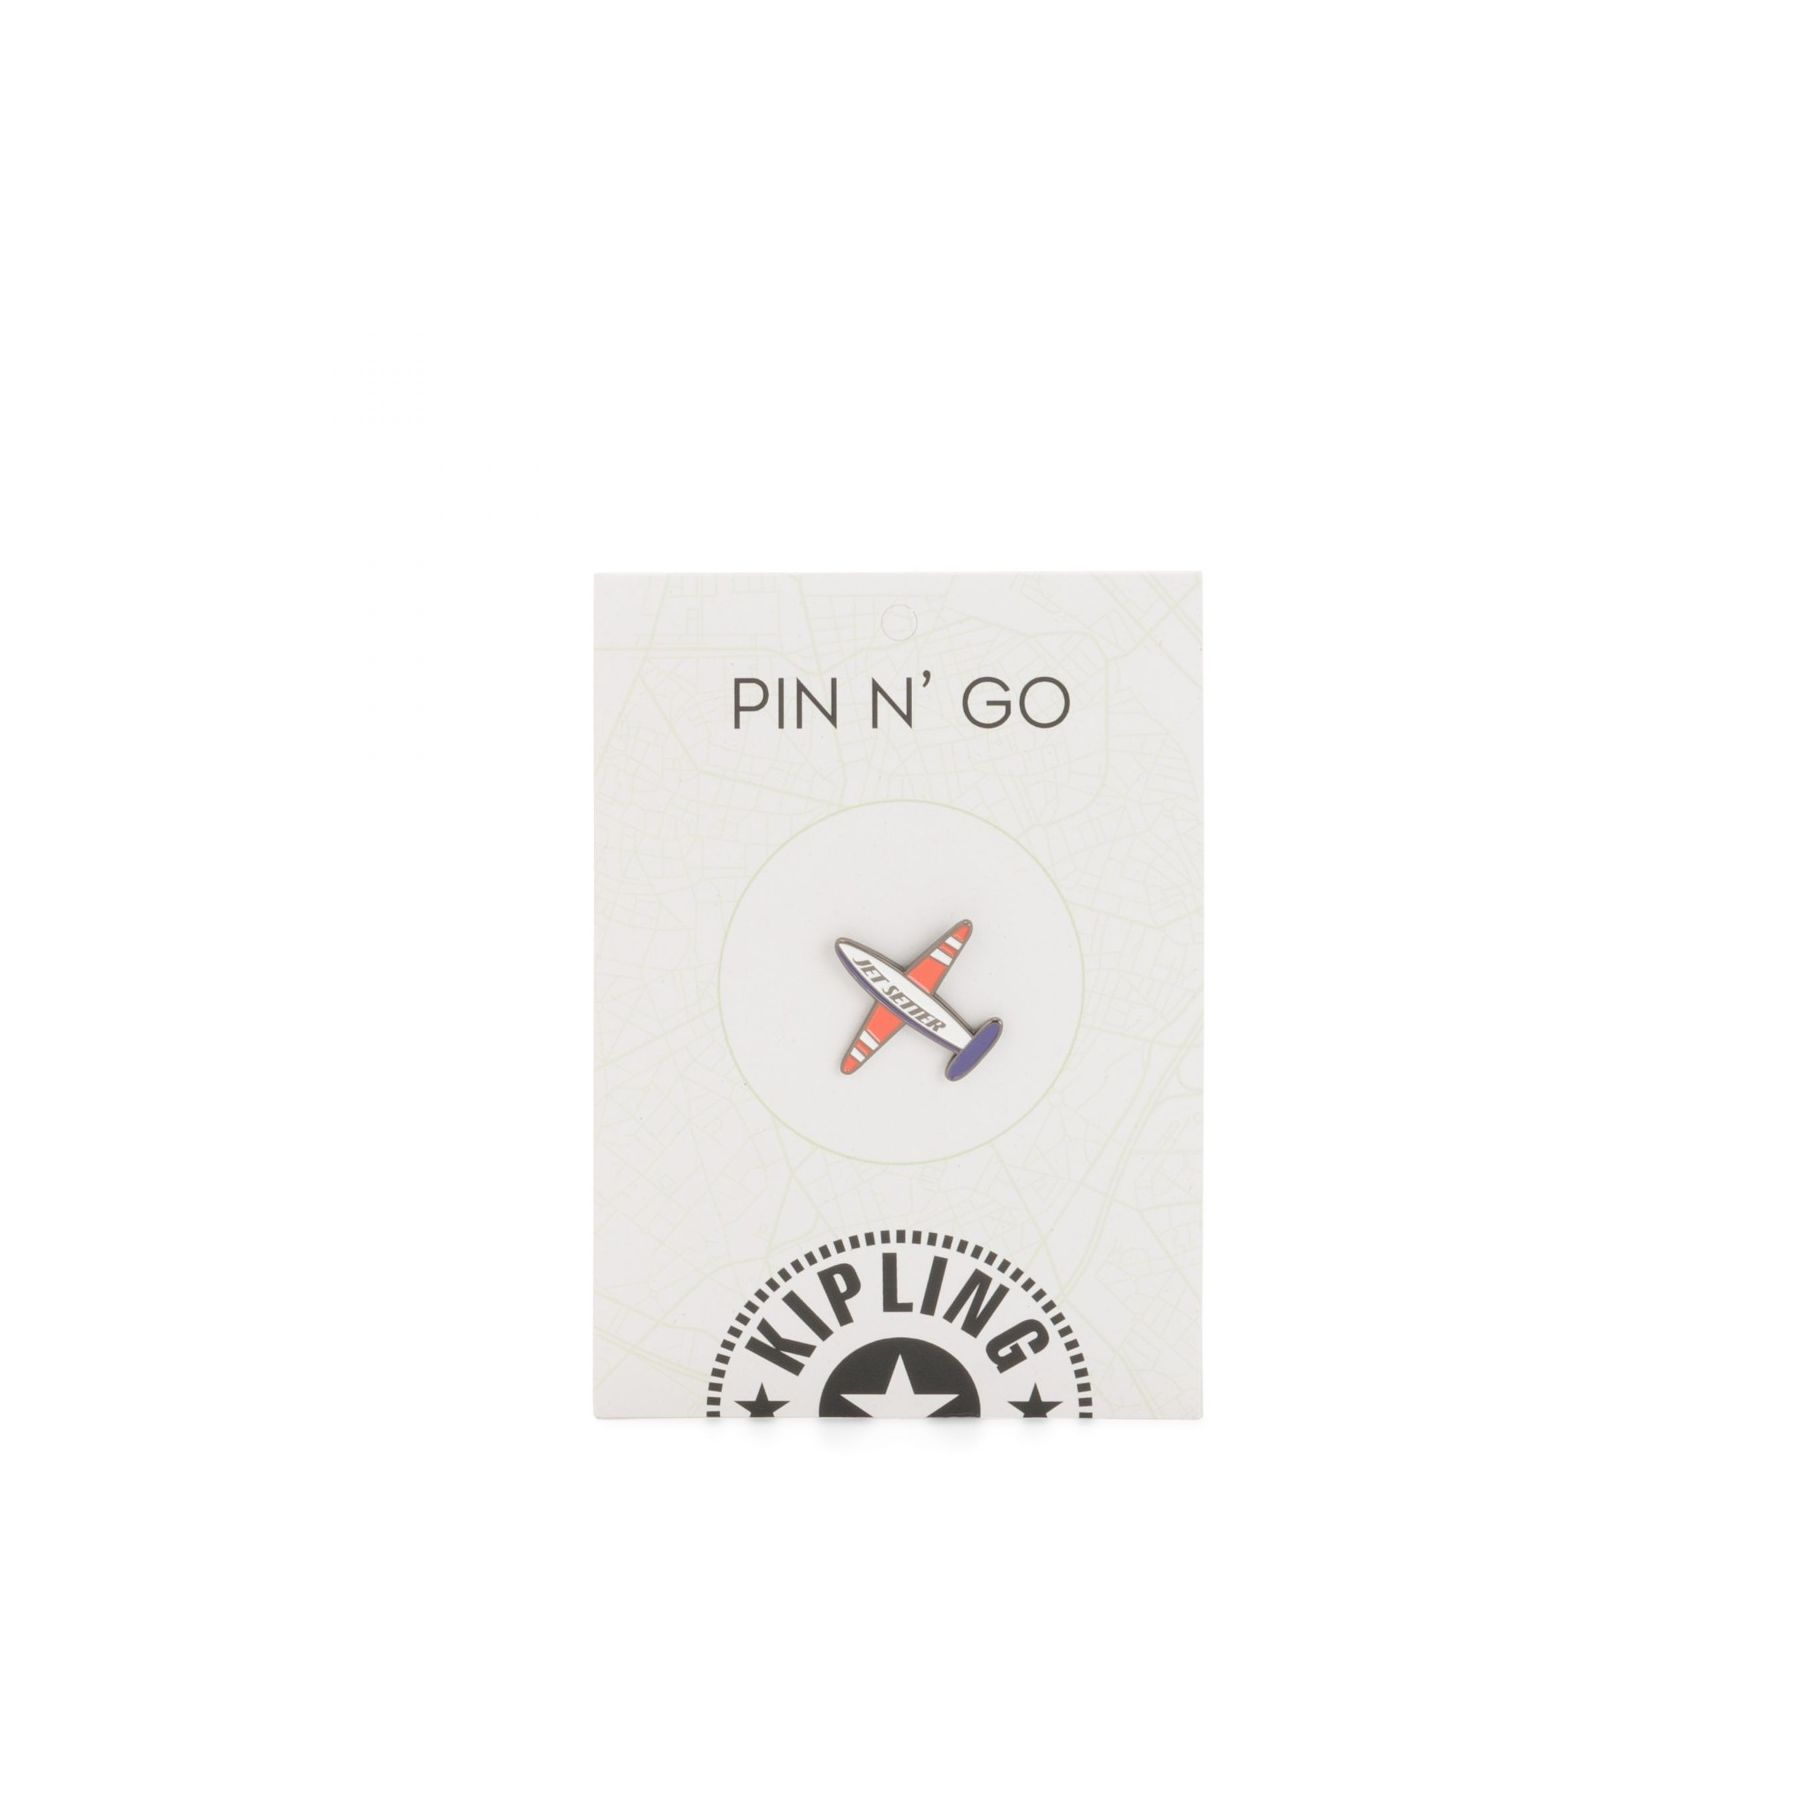 AIRPLAINE PIN Latest Accessories by Kipling